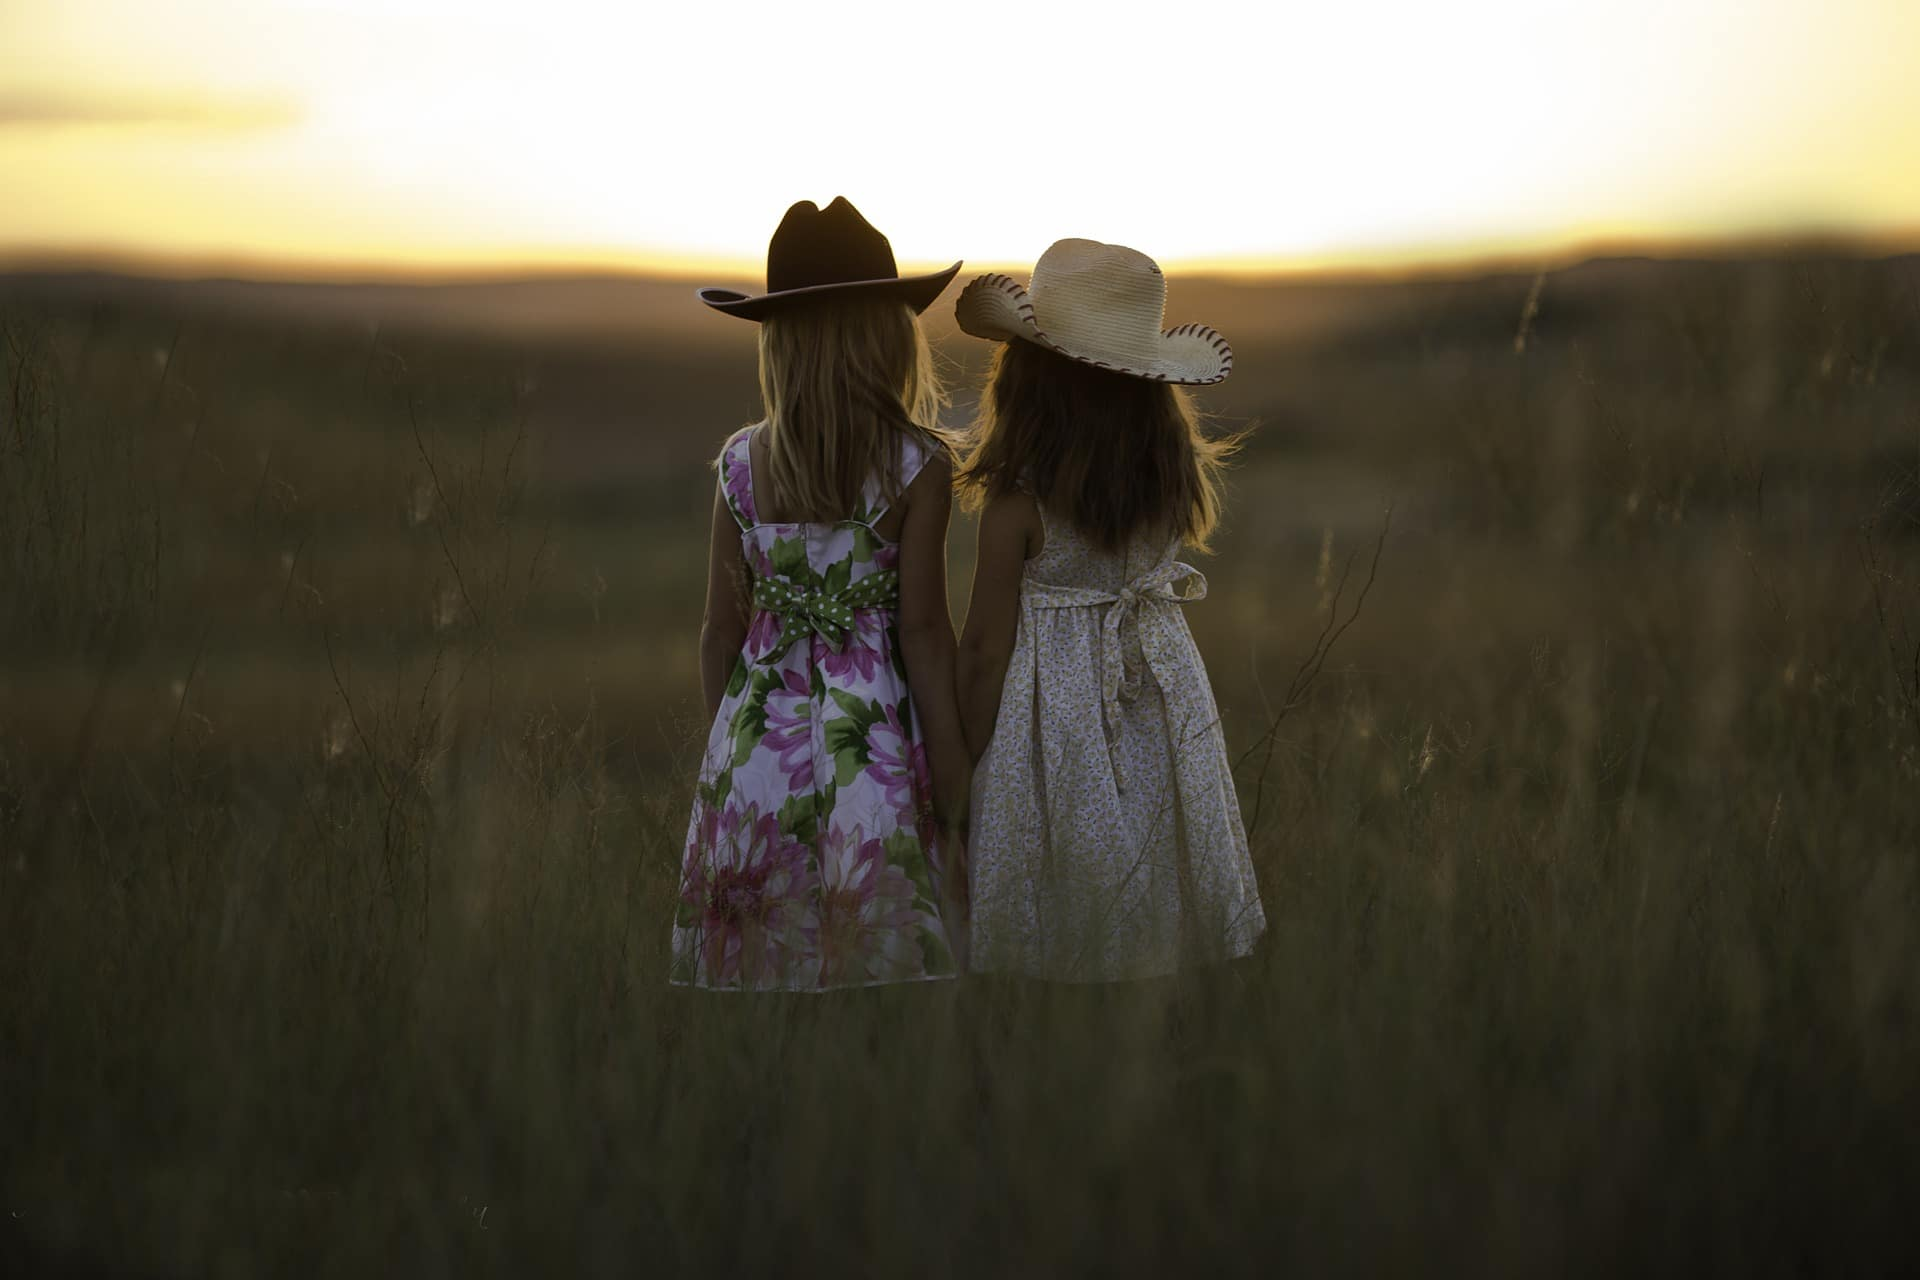 How to get those kids to stop fighting and perhaps become friends #parents